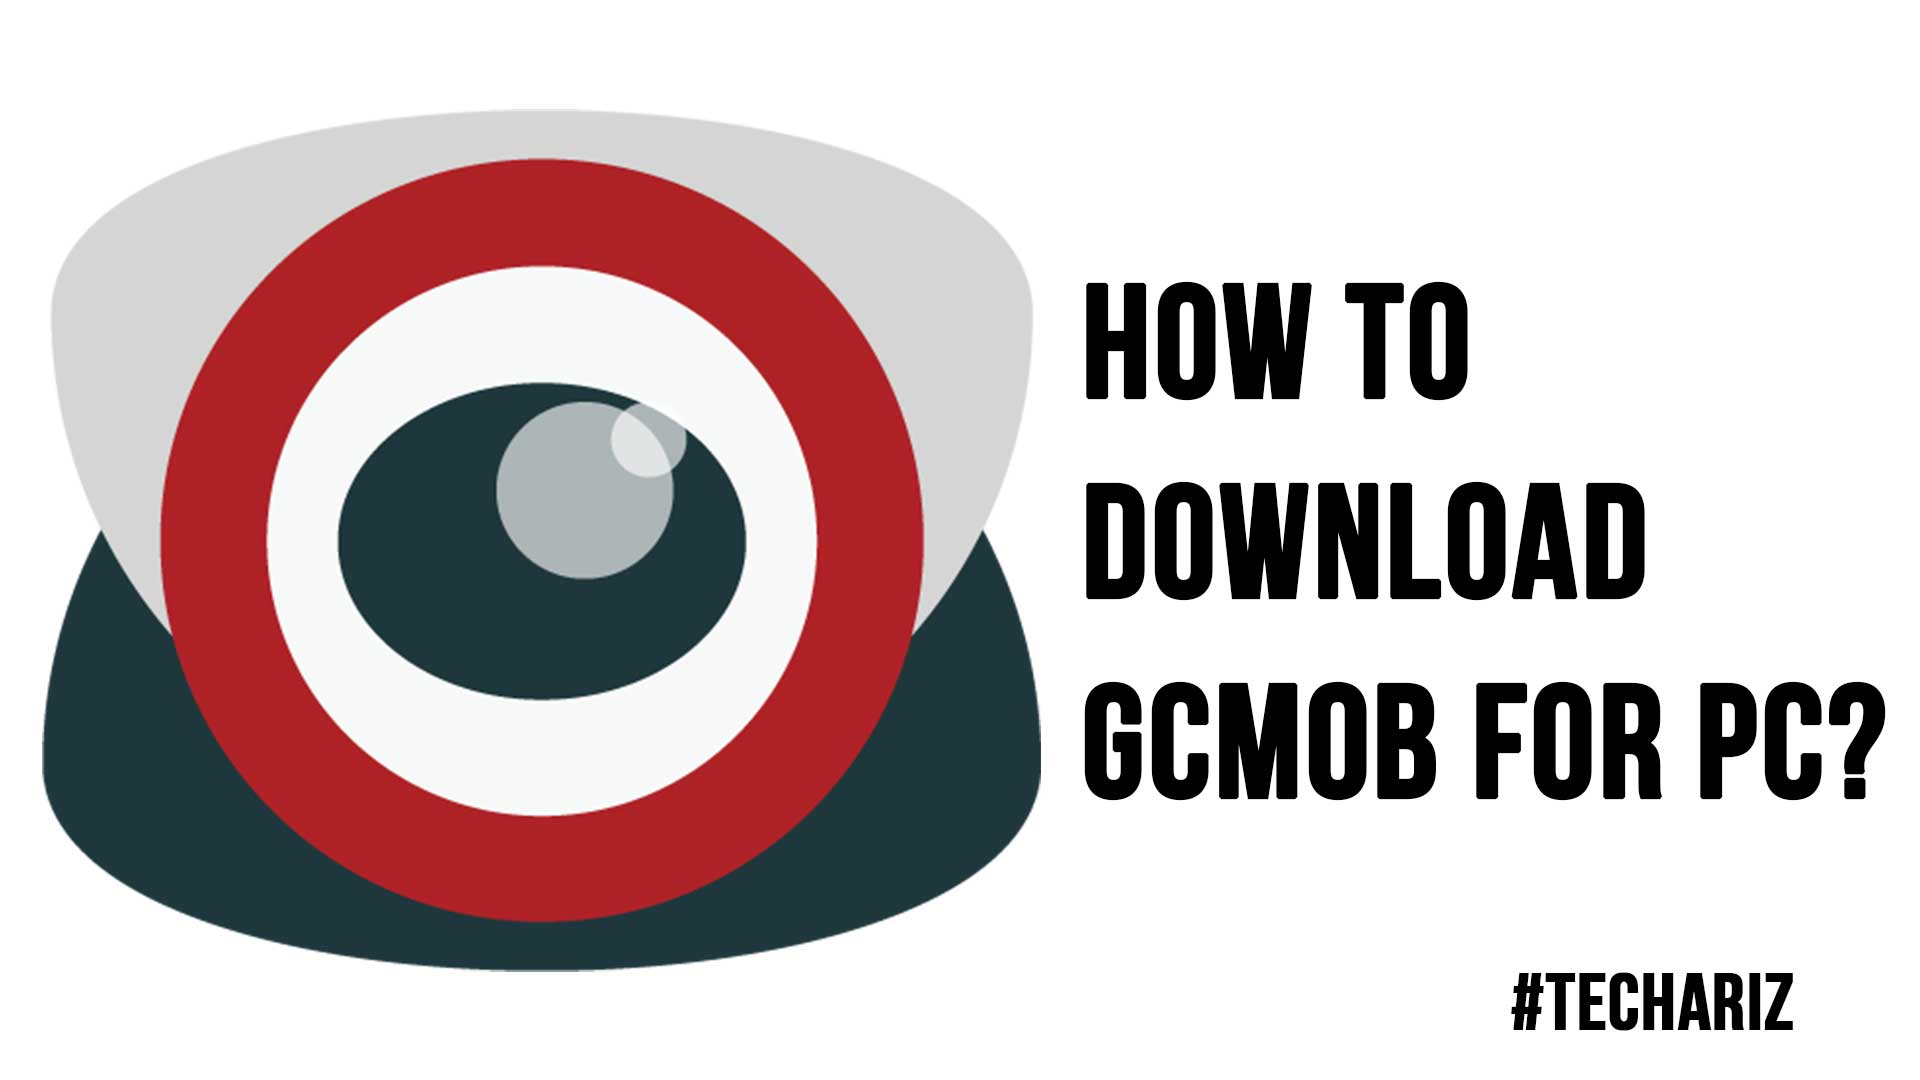 How to Download gCMOB for PC